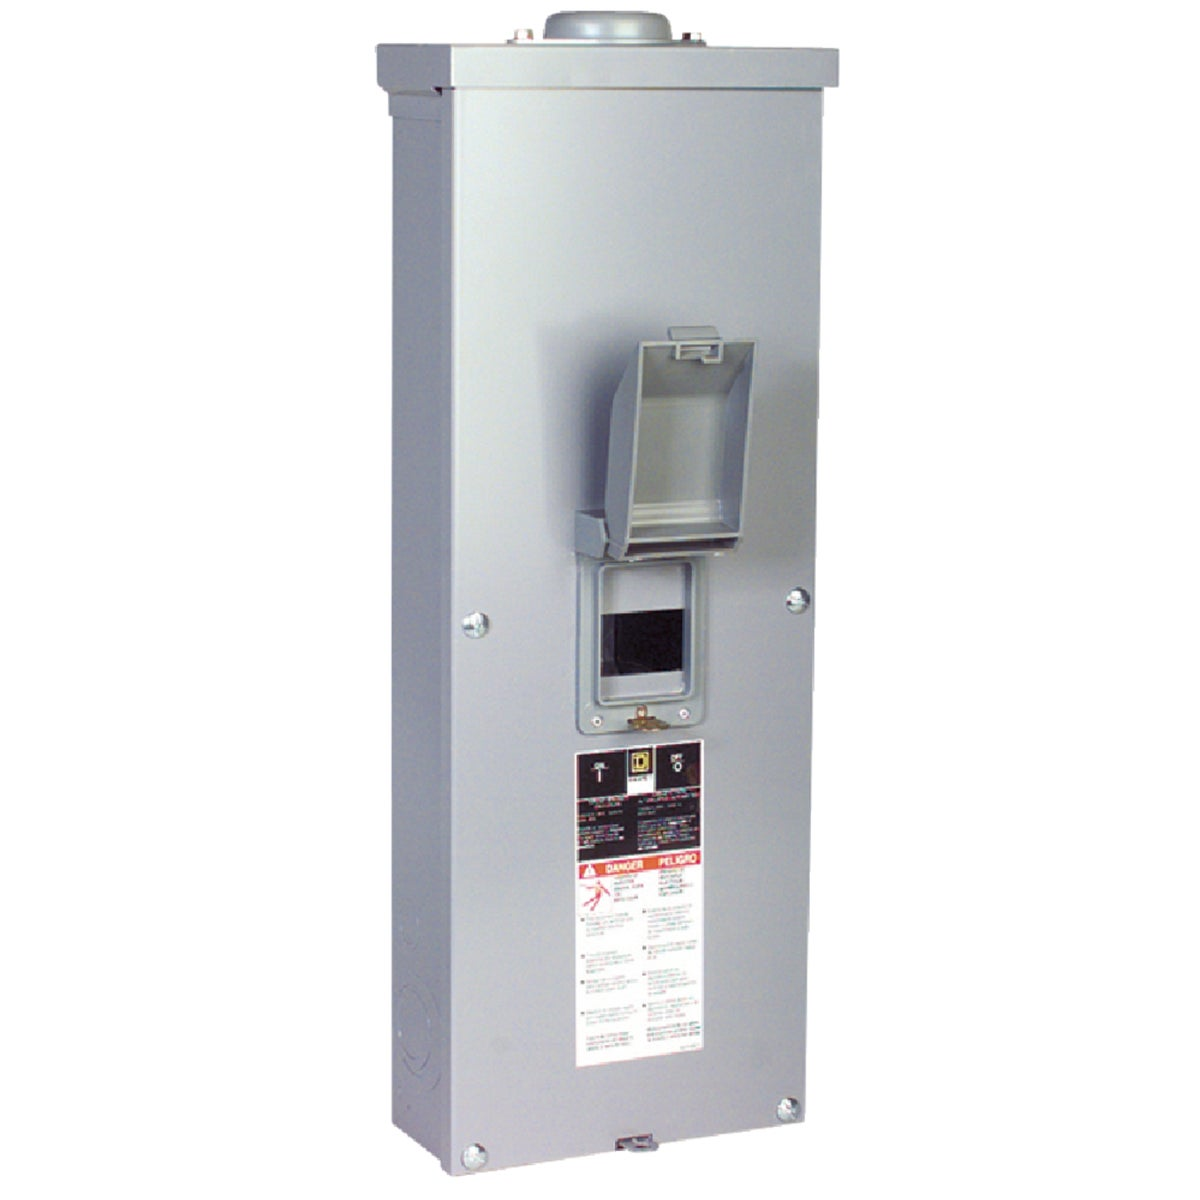 200A ENCLOSED BREAKER